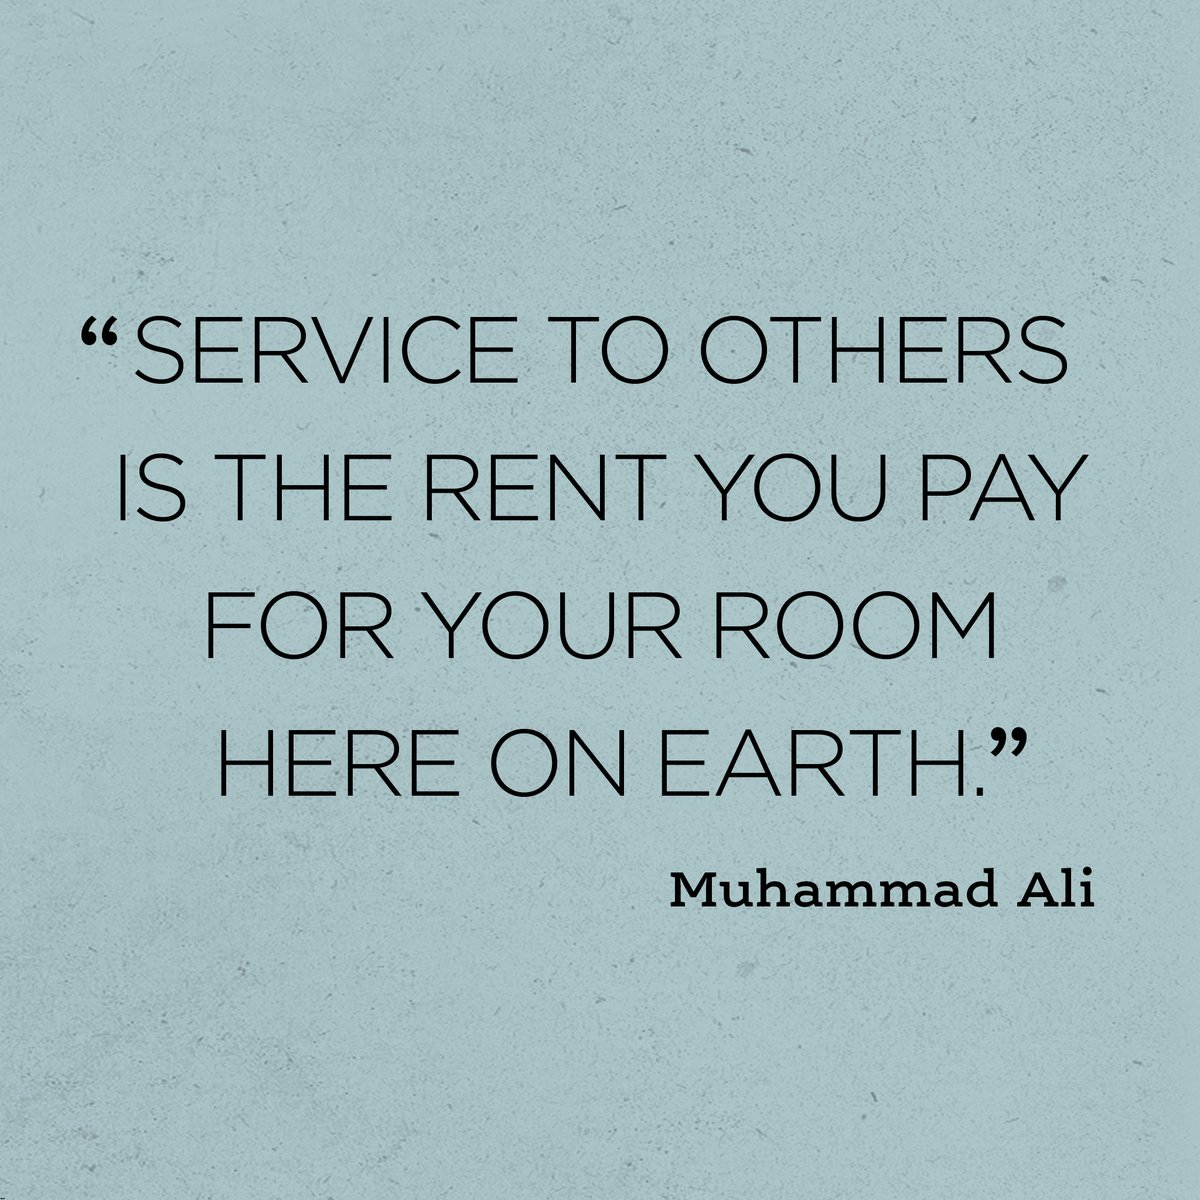 Serviceable quote Service to others is the rent you pay for your room here on Earth.